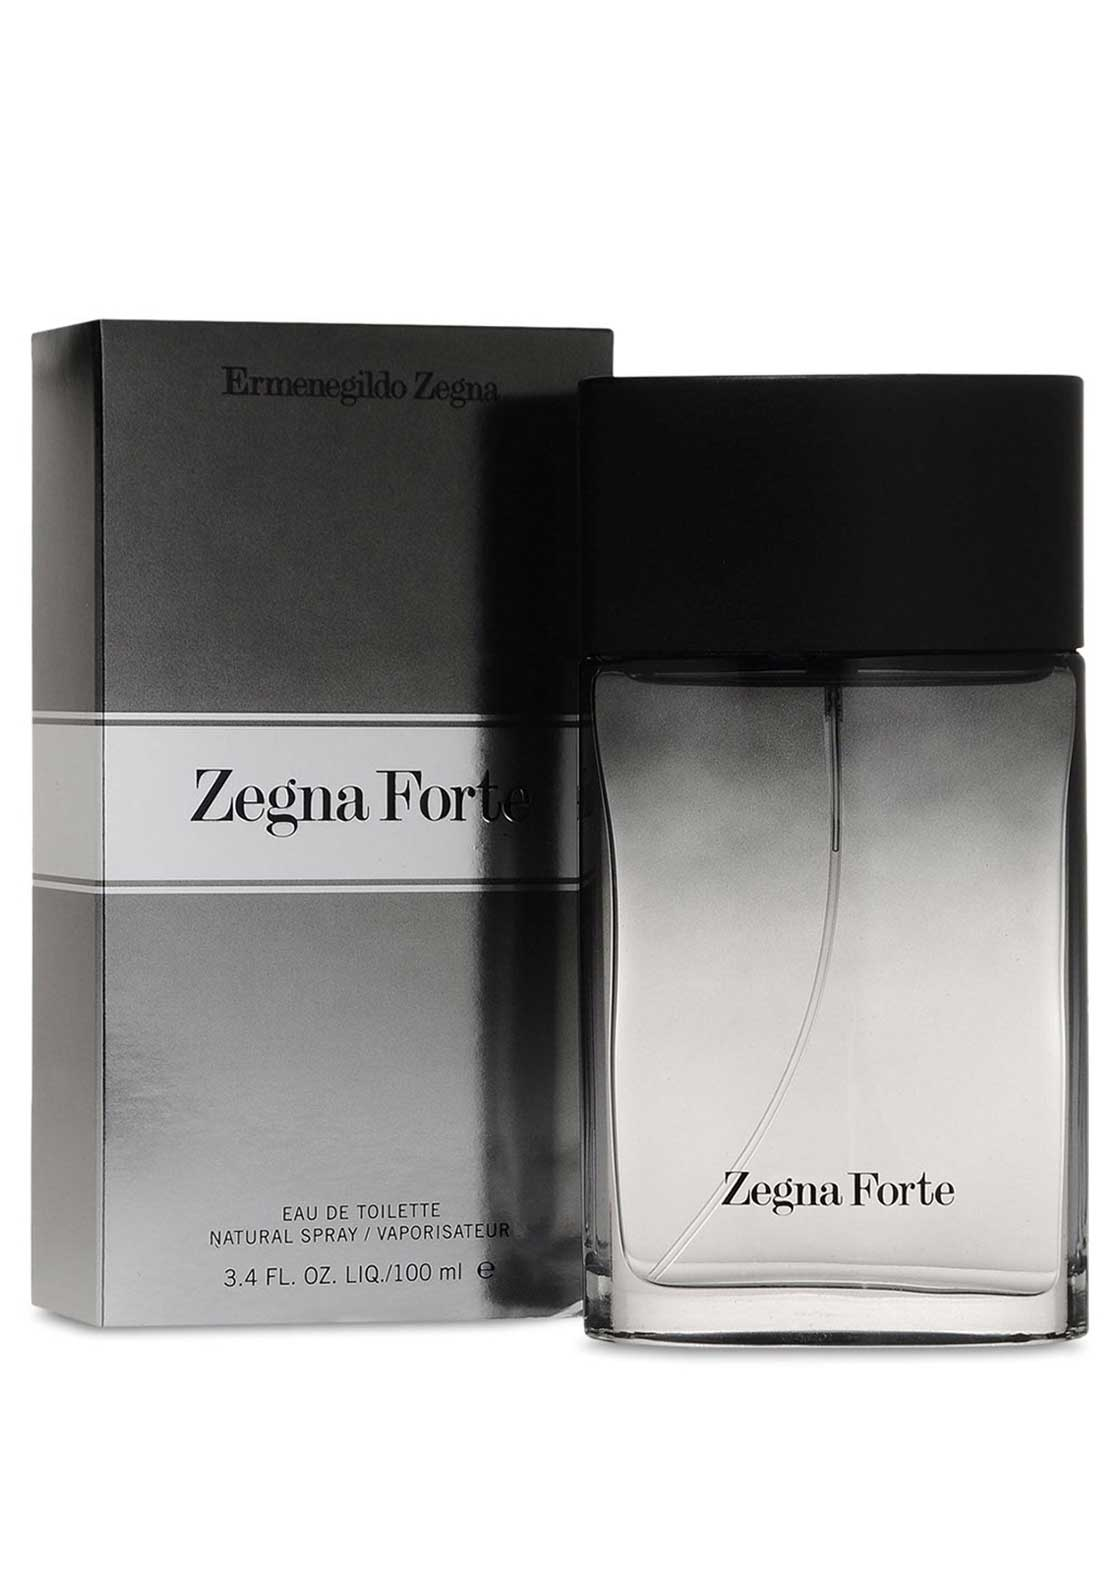 Ermenegildo Zegna Forte Eau De Toilette Natural Spray, 50ml